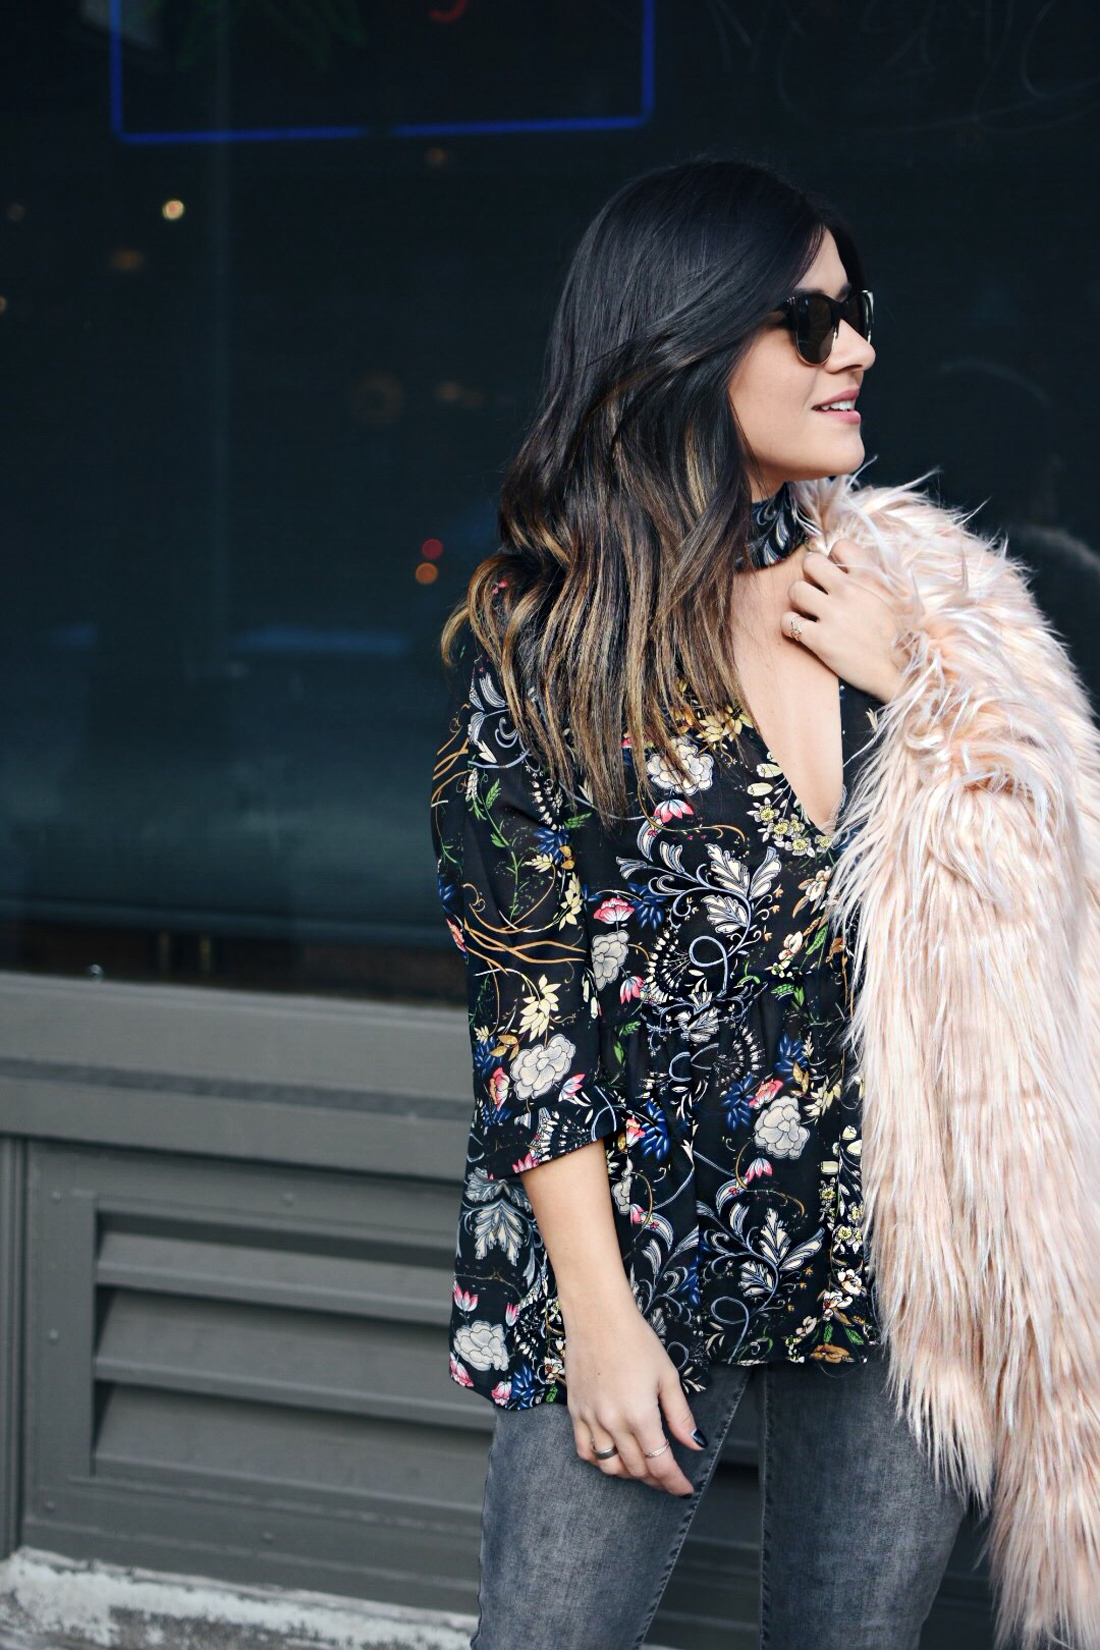 Carolina Hellal of Chic Talk wearing a floral top, furry pink coat, Madewell jeans, and h&m black booties